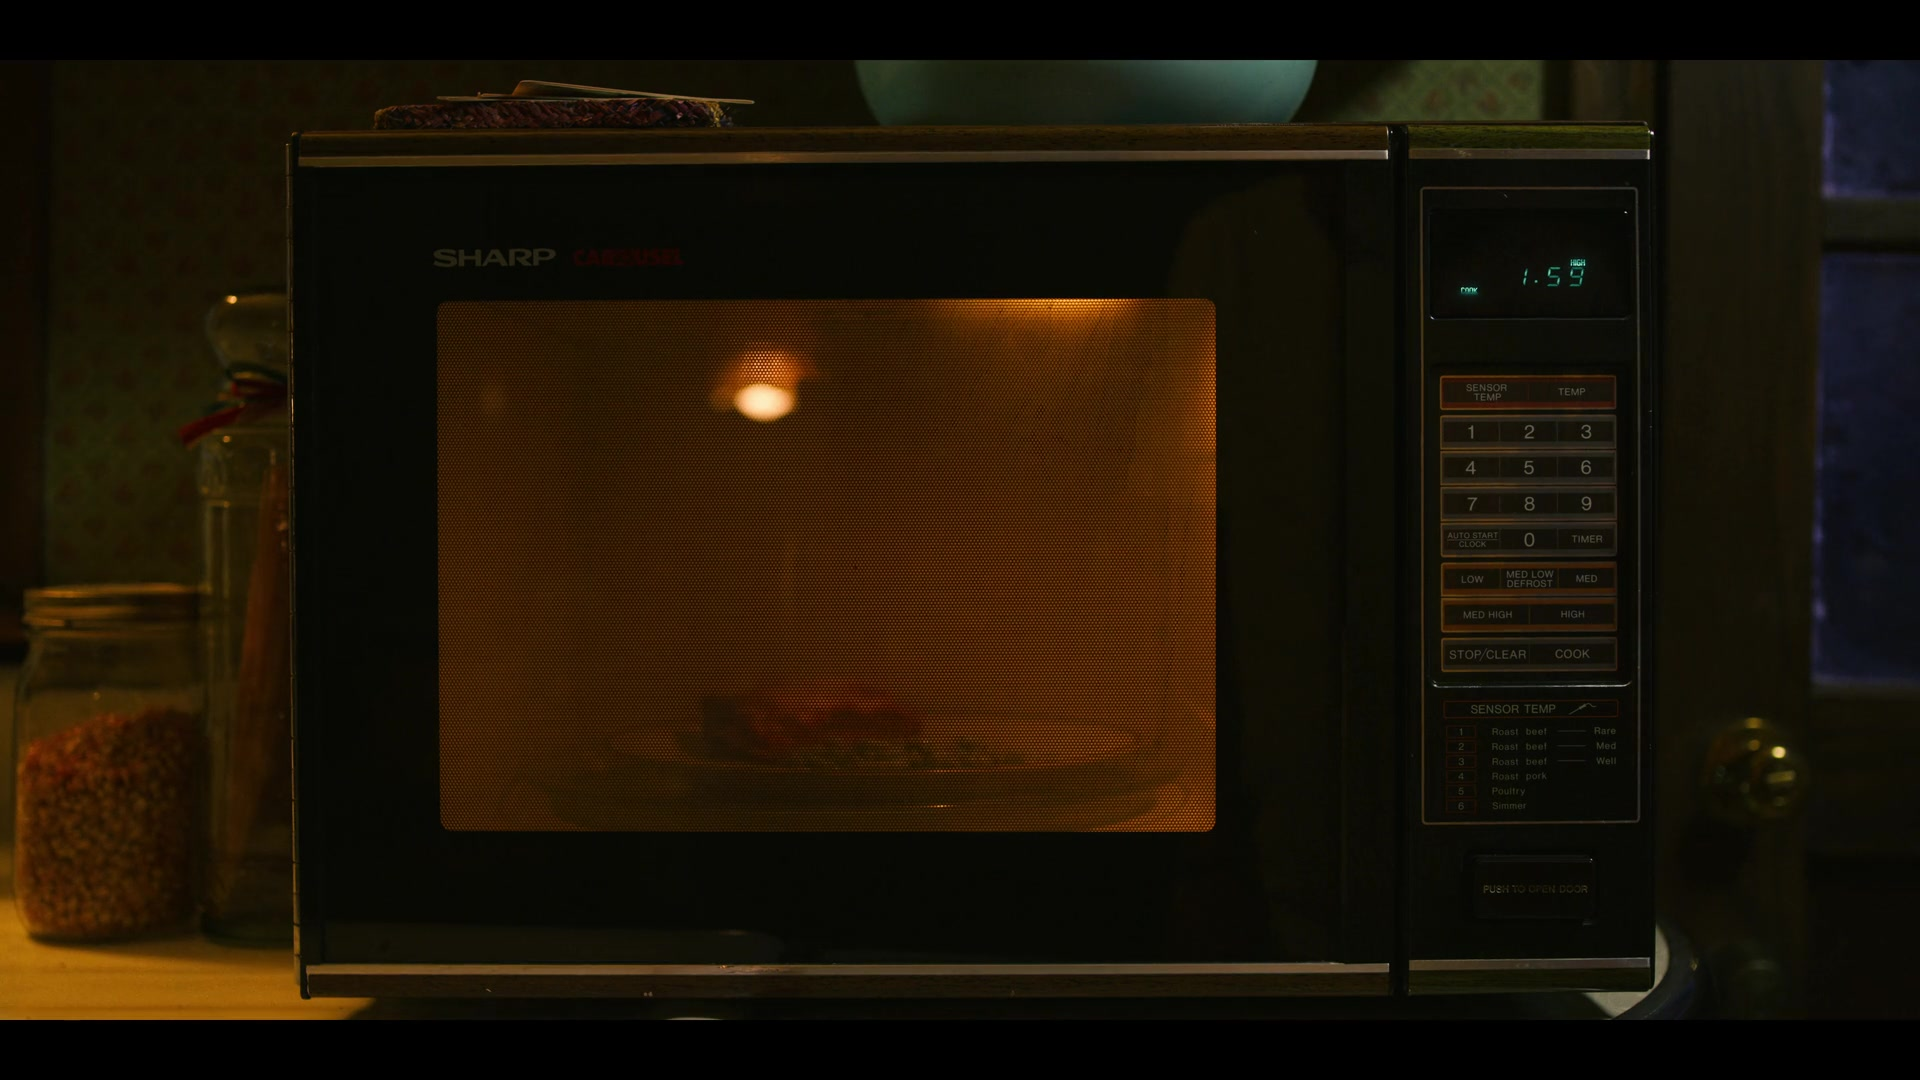 Sharp-Microwave-Oven-in-Stranger-Things.jpg